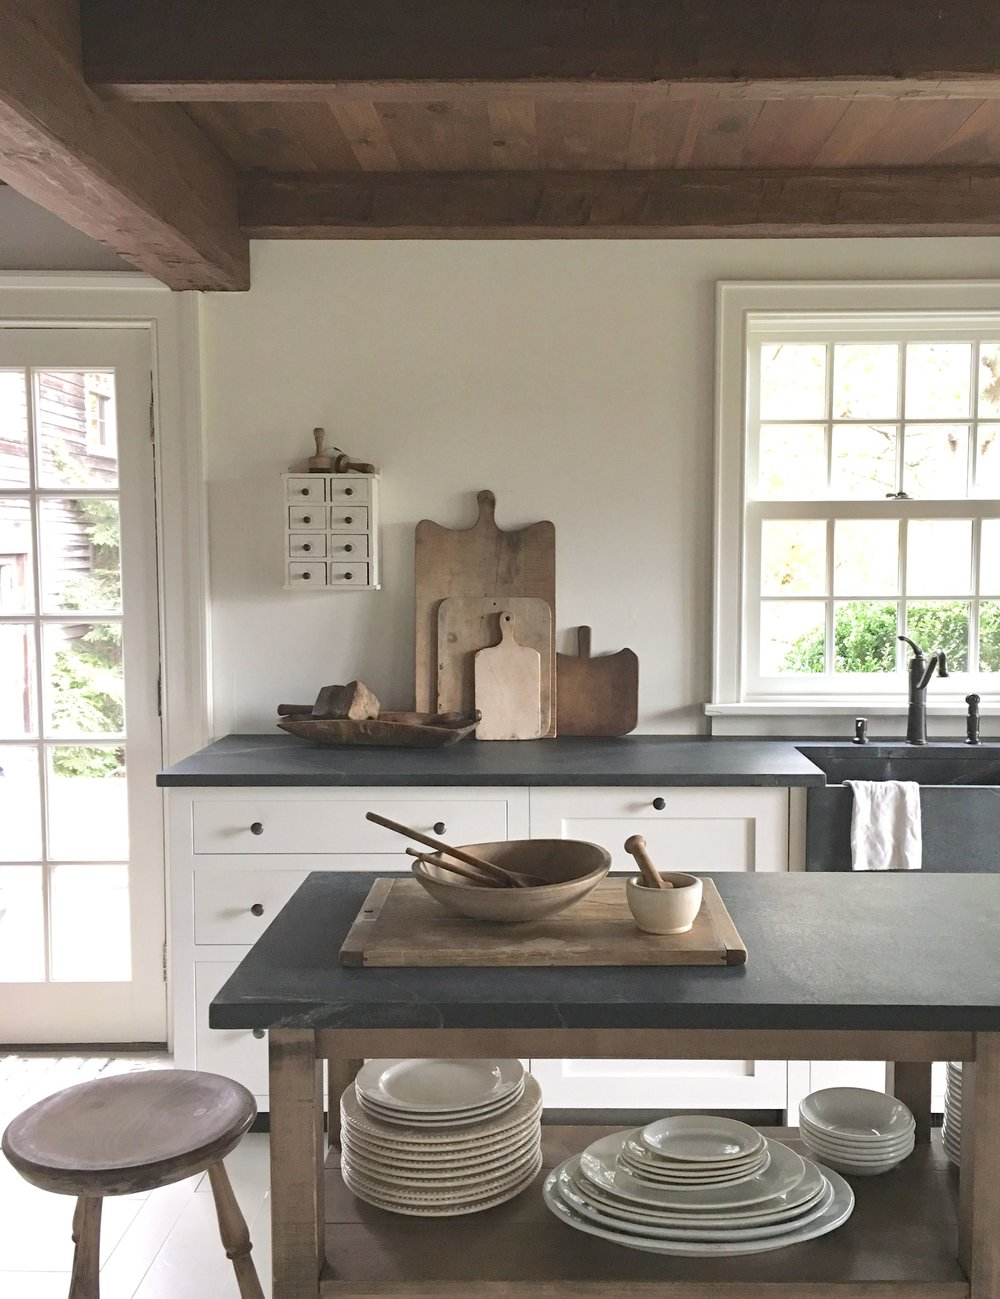 Farmhouse Modern Shaker Style Kitchen. Wood beams, White Walls, Wooden Cutting Boards, Vintage Finds for the kitchen.